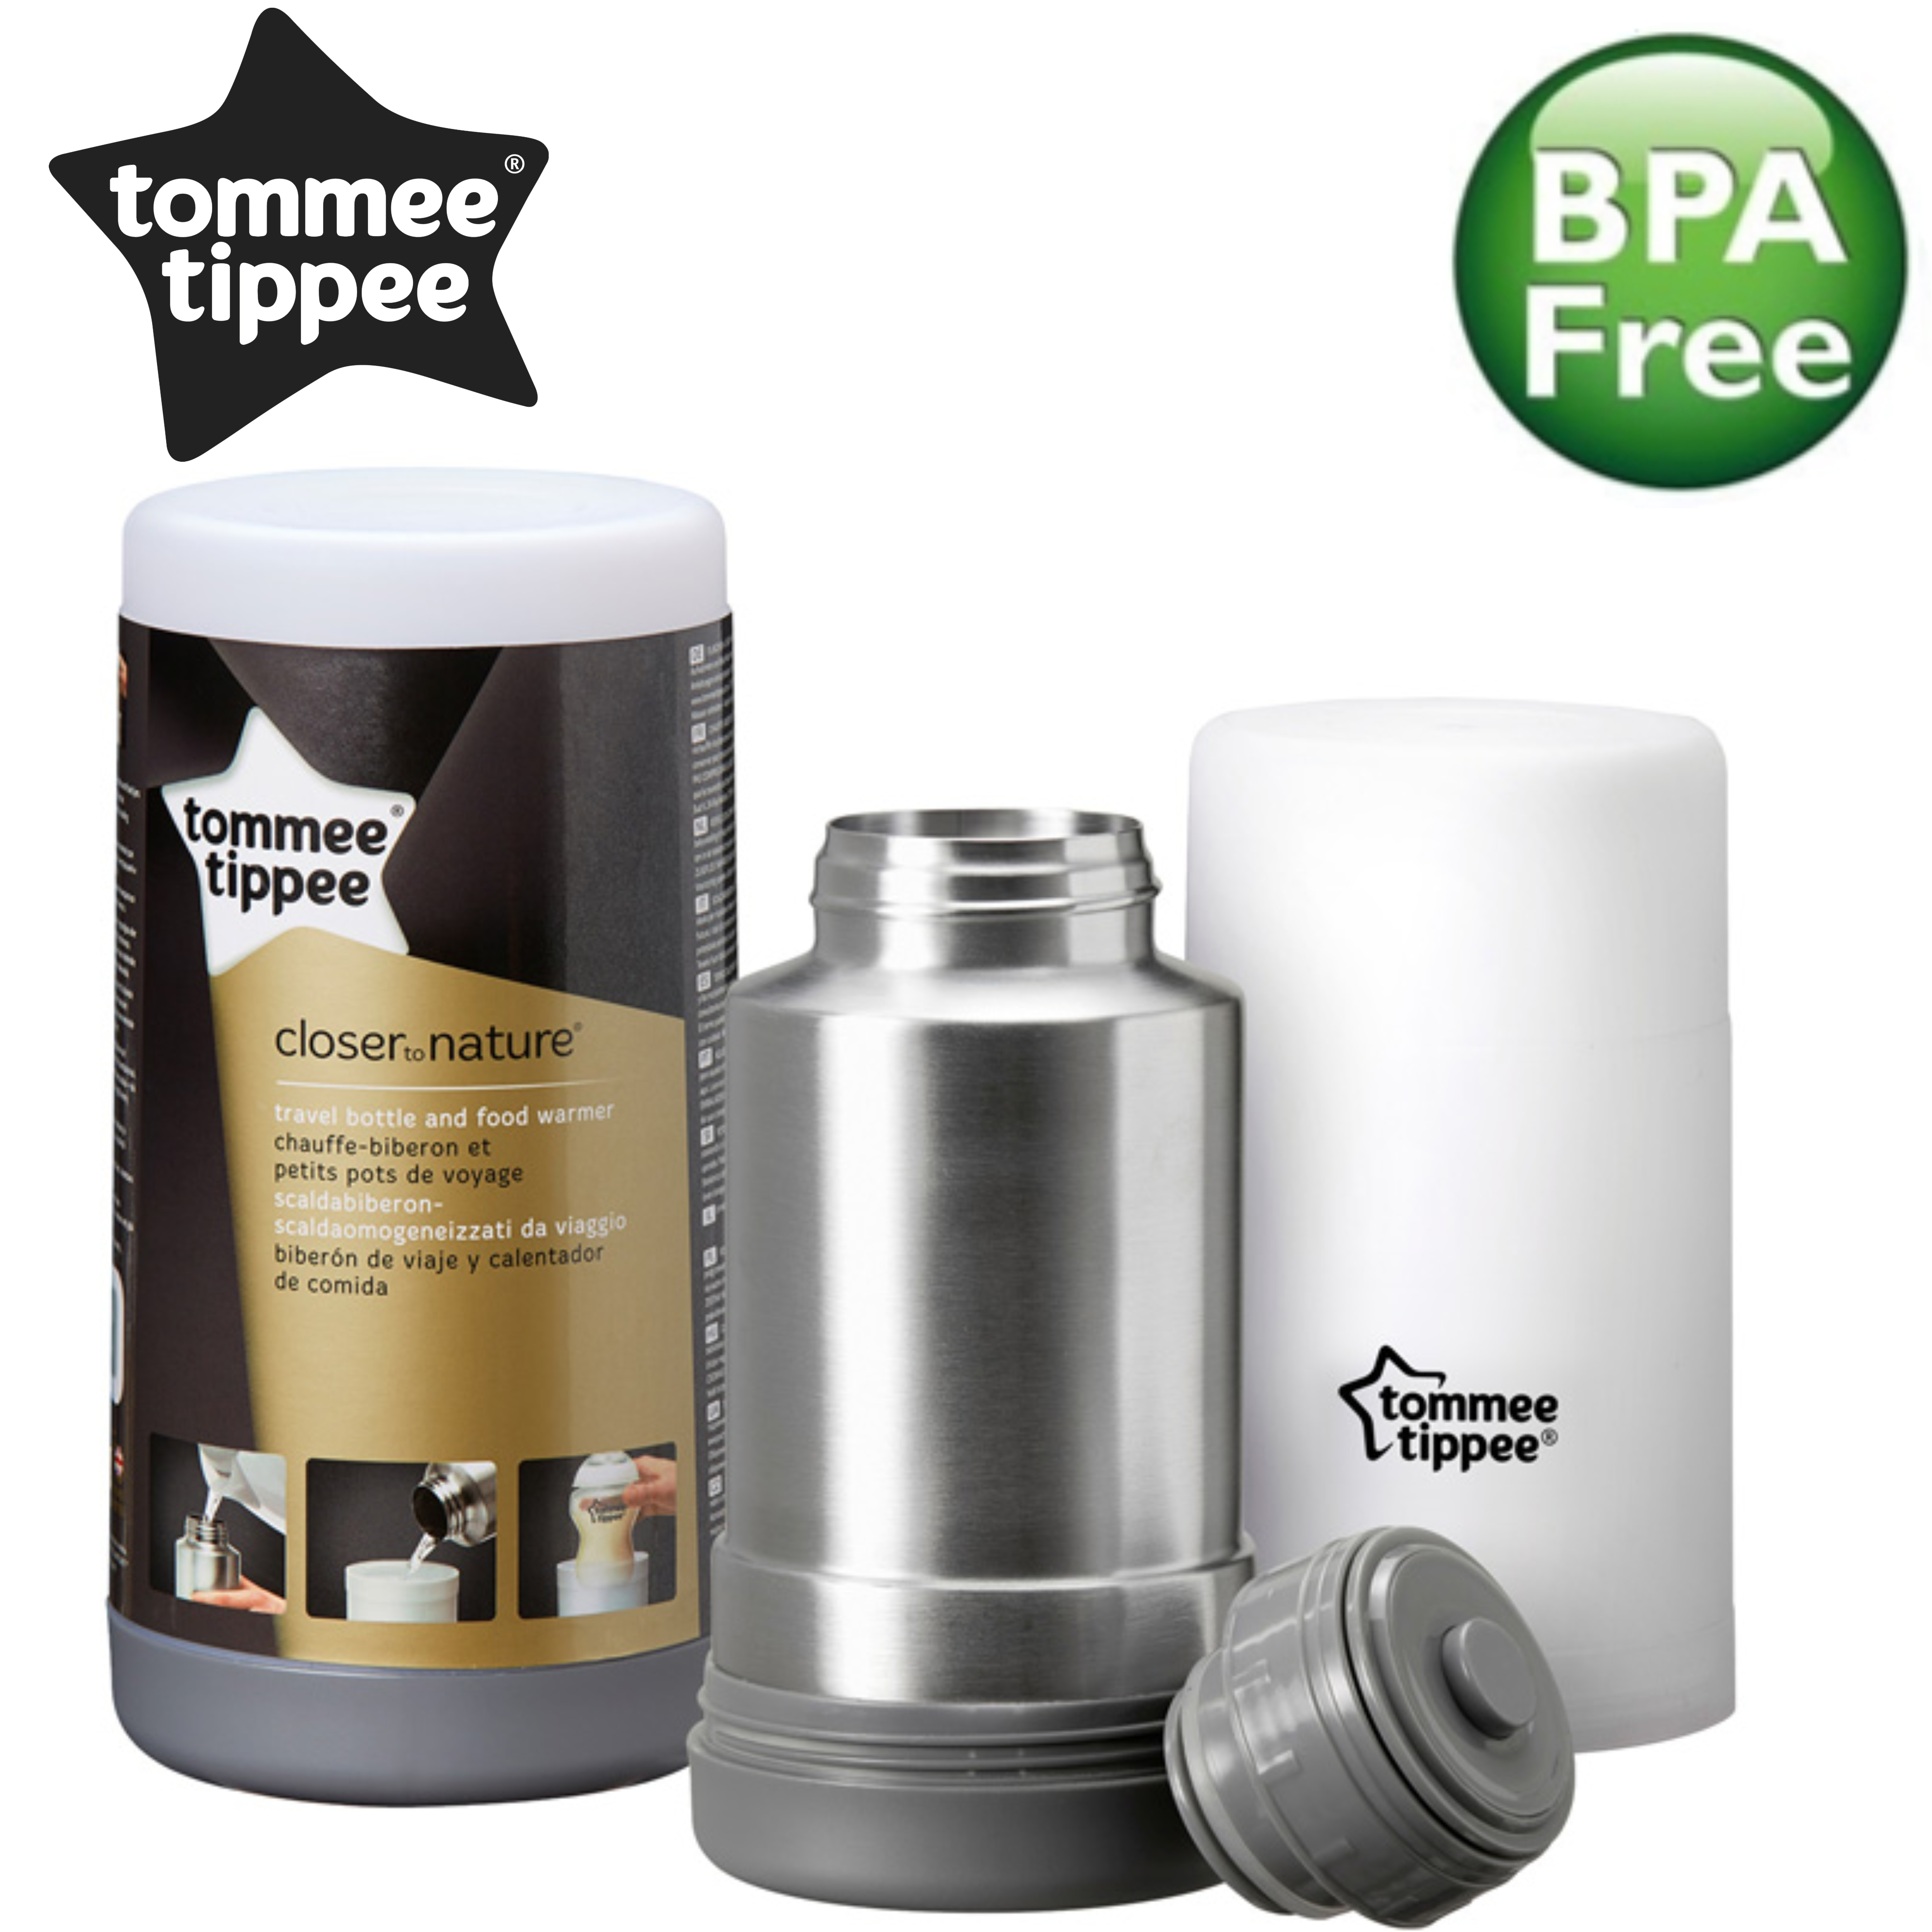 Tommee Tippee Closer to Nature Travel Bottle/Food Warmer   Baby Milk Flash Warmer